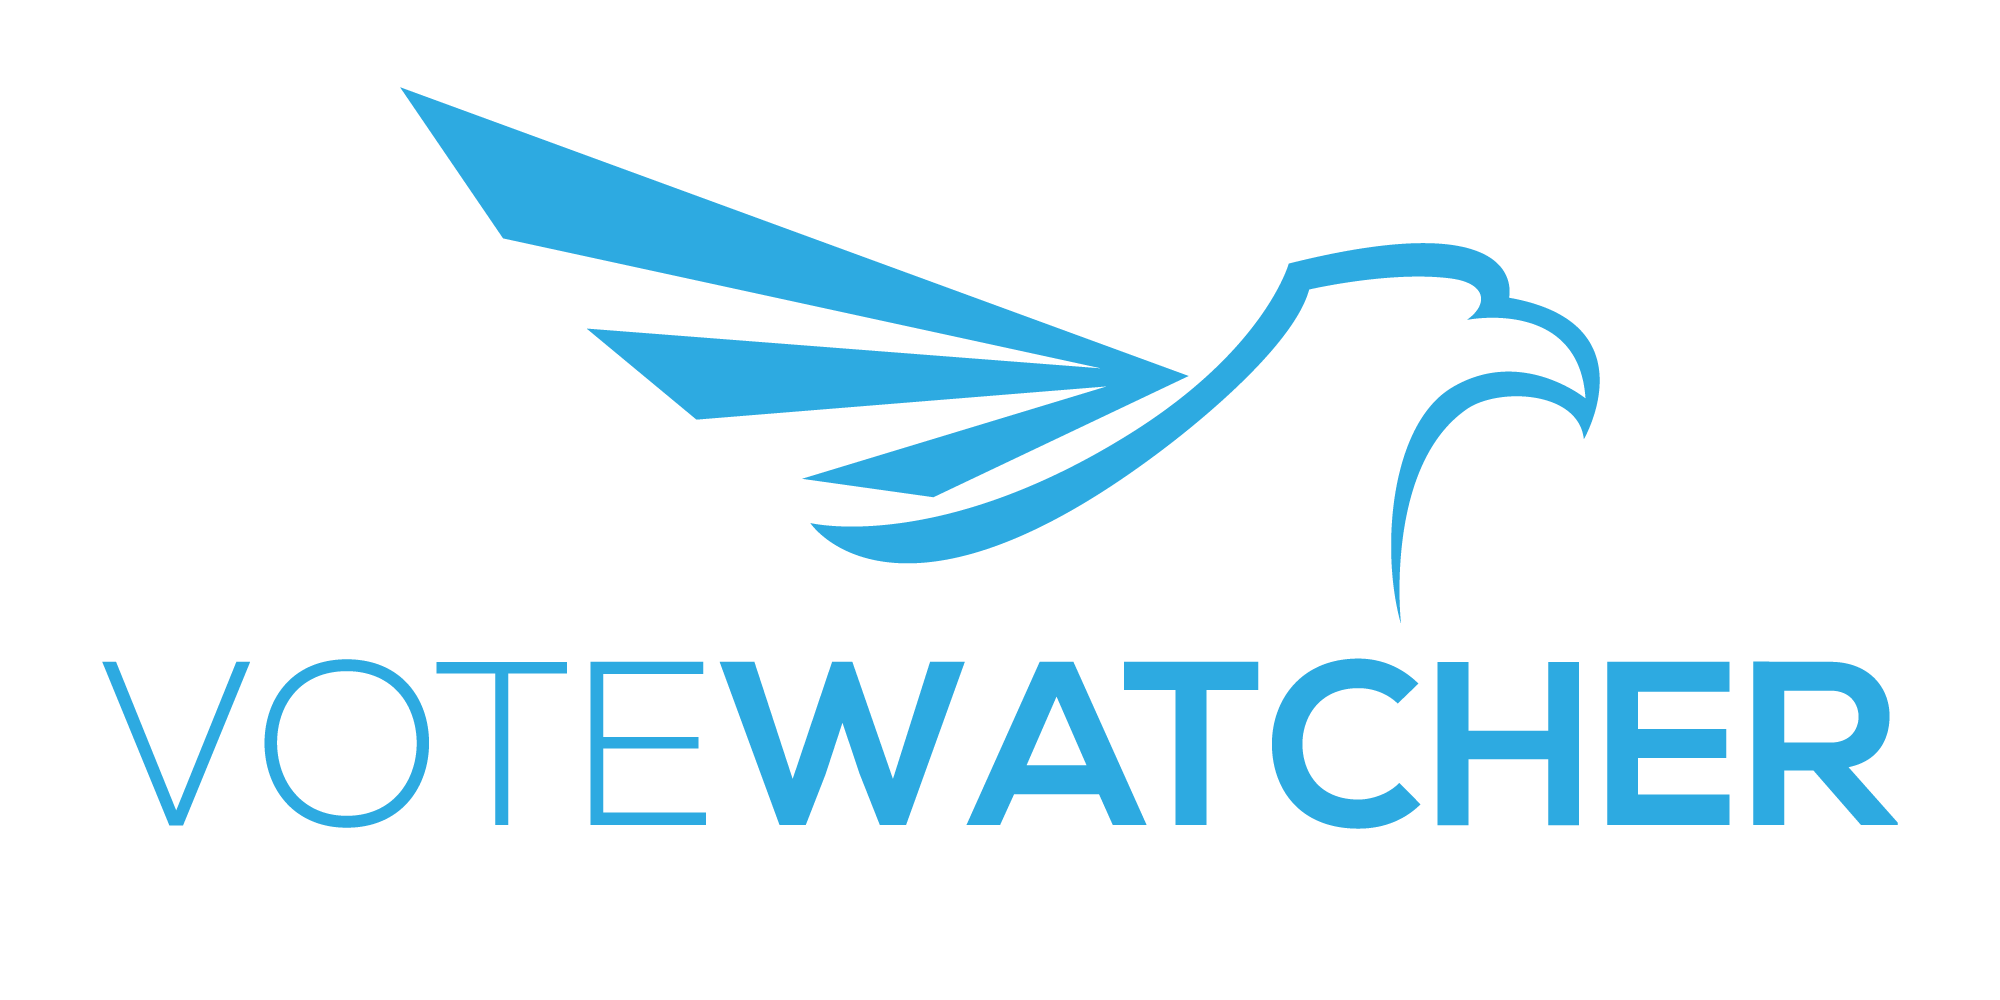 Vote Watcher